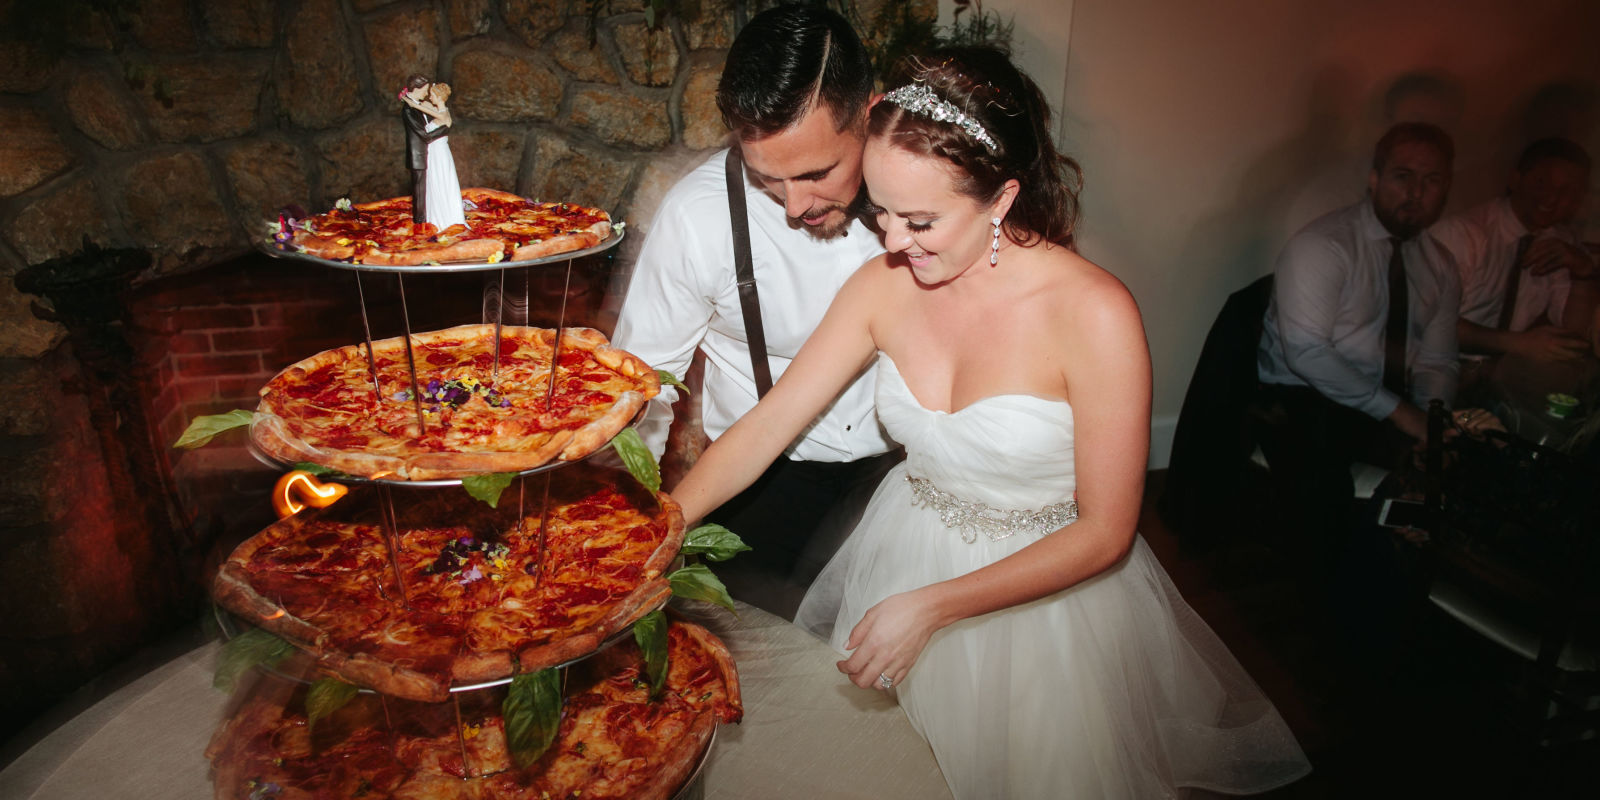 This Couple Had A Pizza Instead Of Cake At Their Wedding